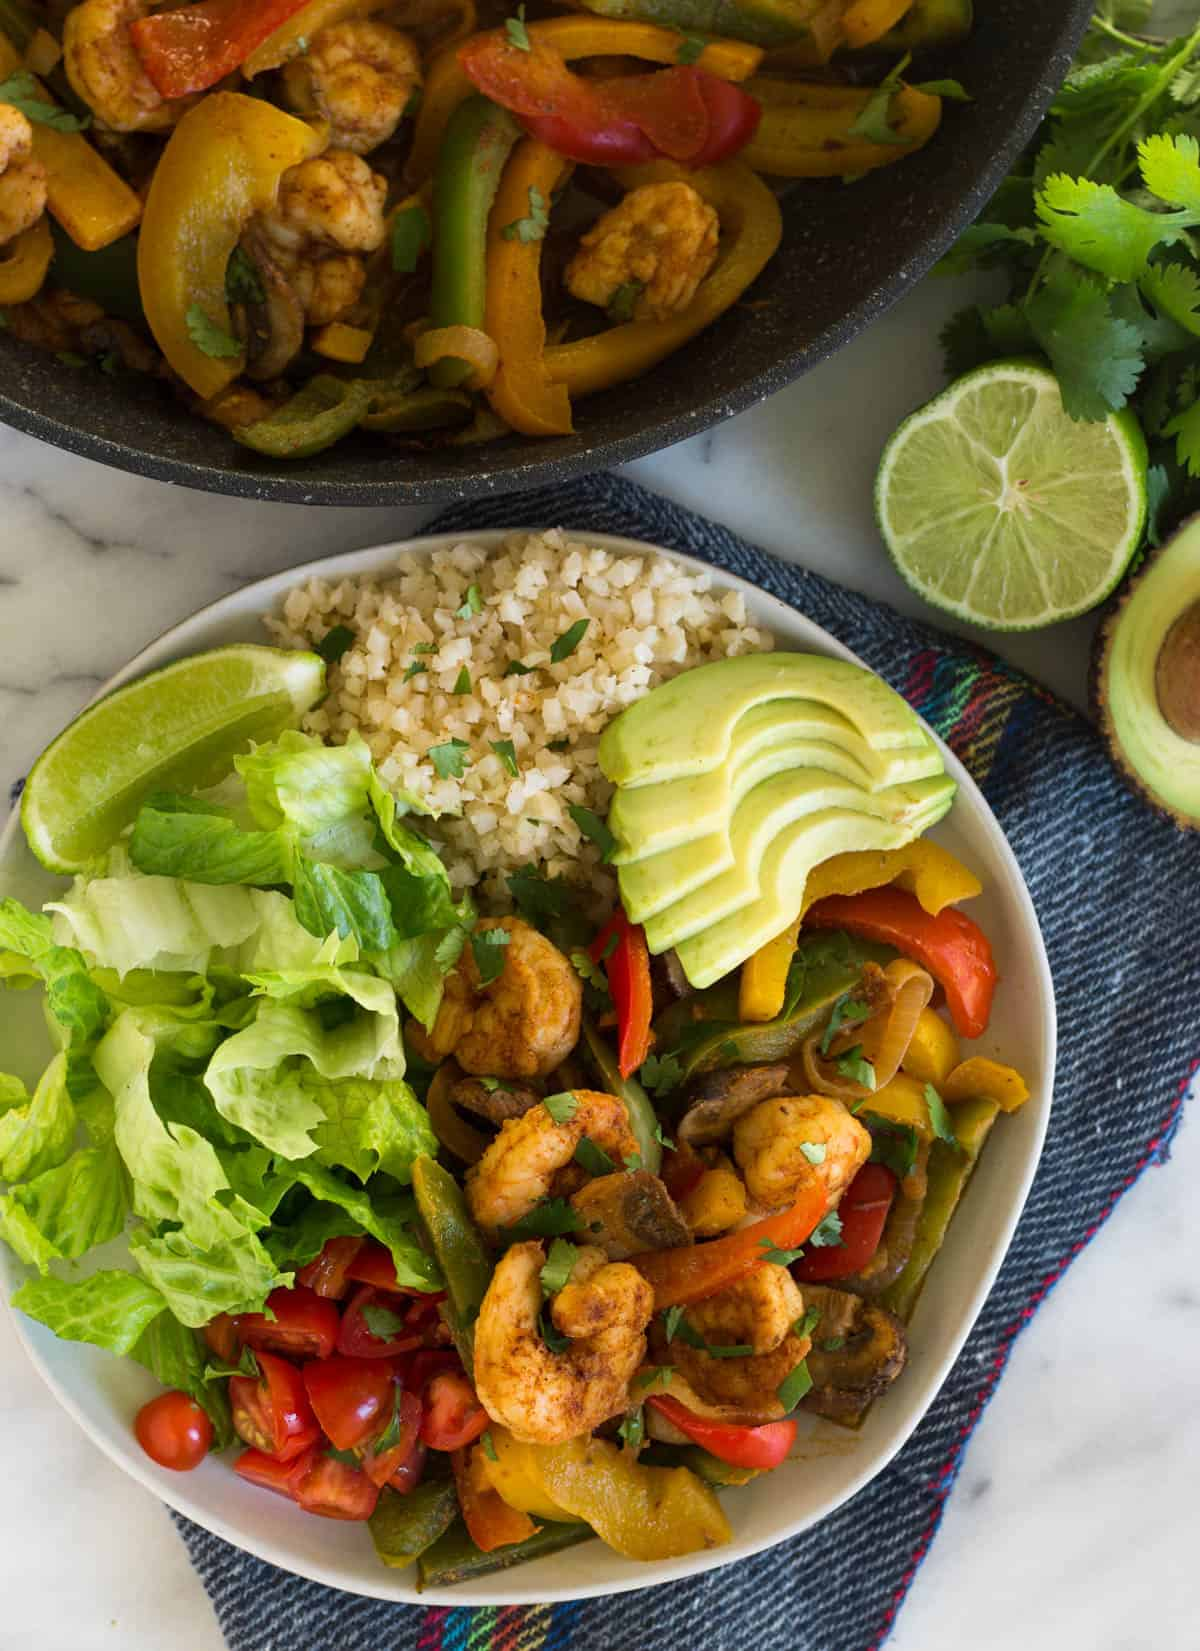 overhead of a plate with shrimp fajitas, lettuce, tomatoes, cauliflower rice, and avocado with a pan of shrimp fajitas and an avocado and lime